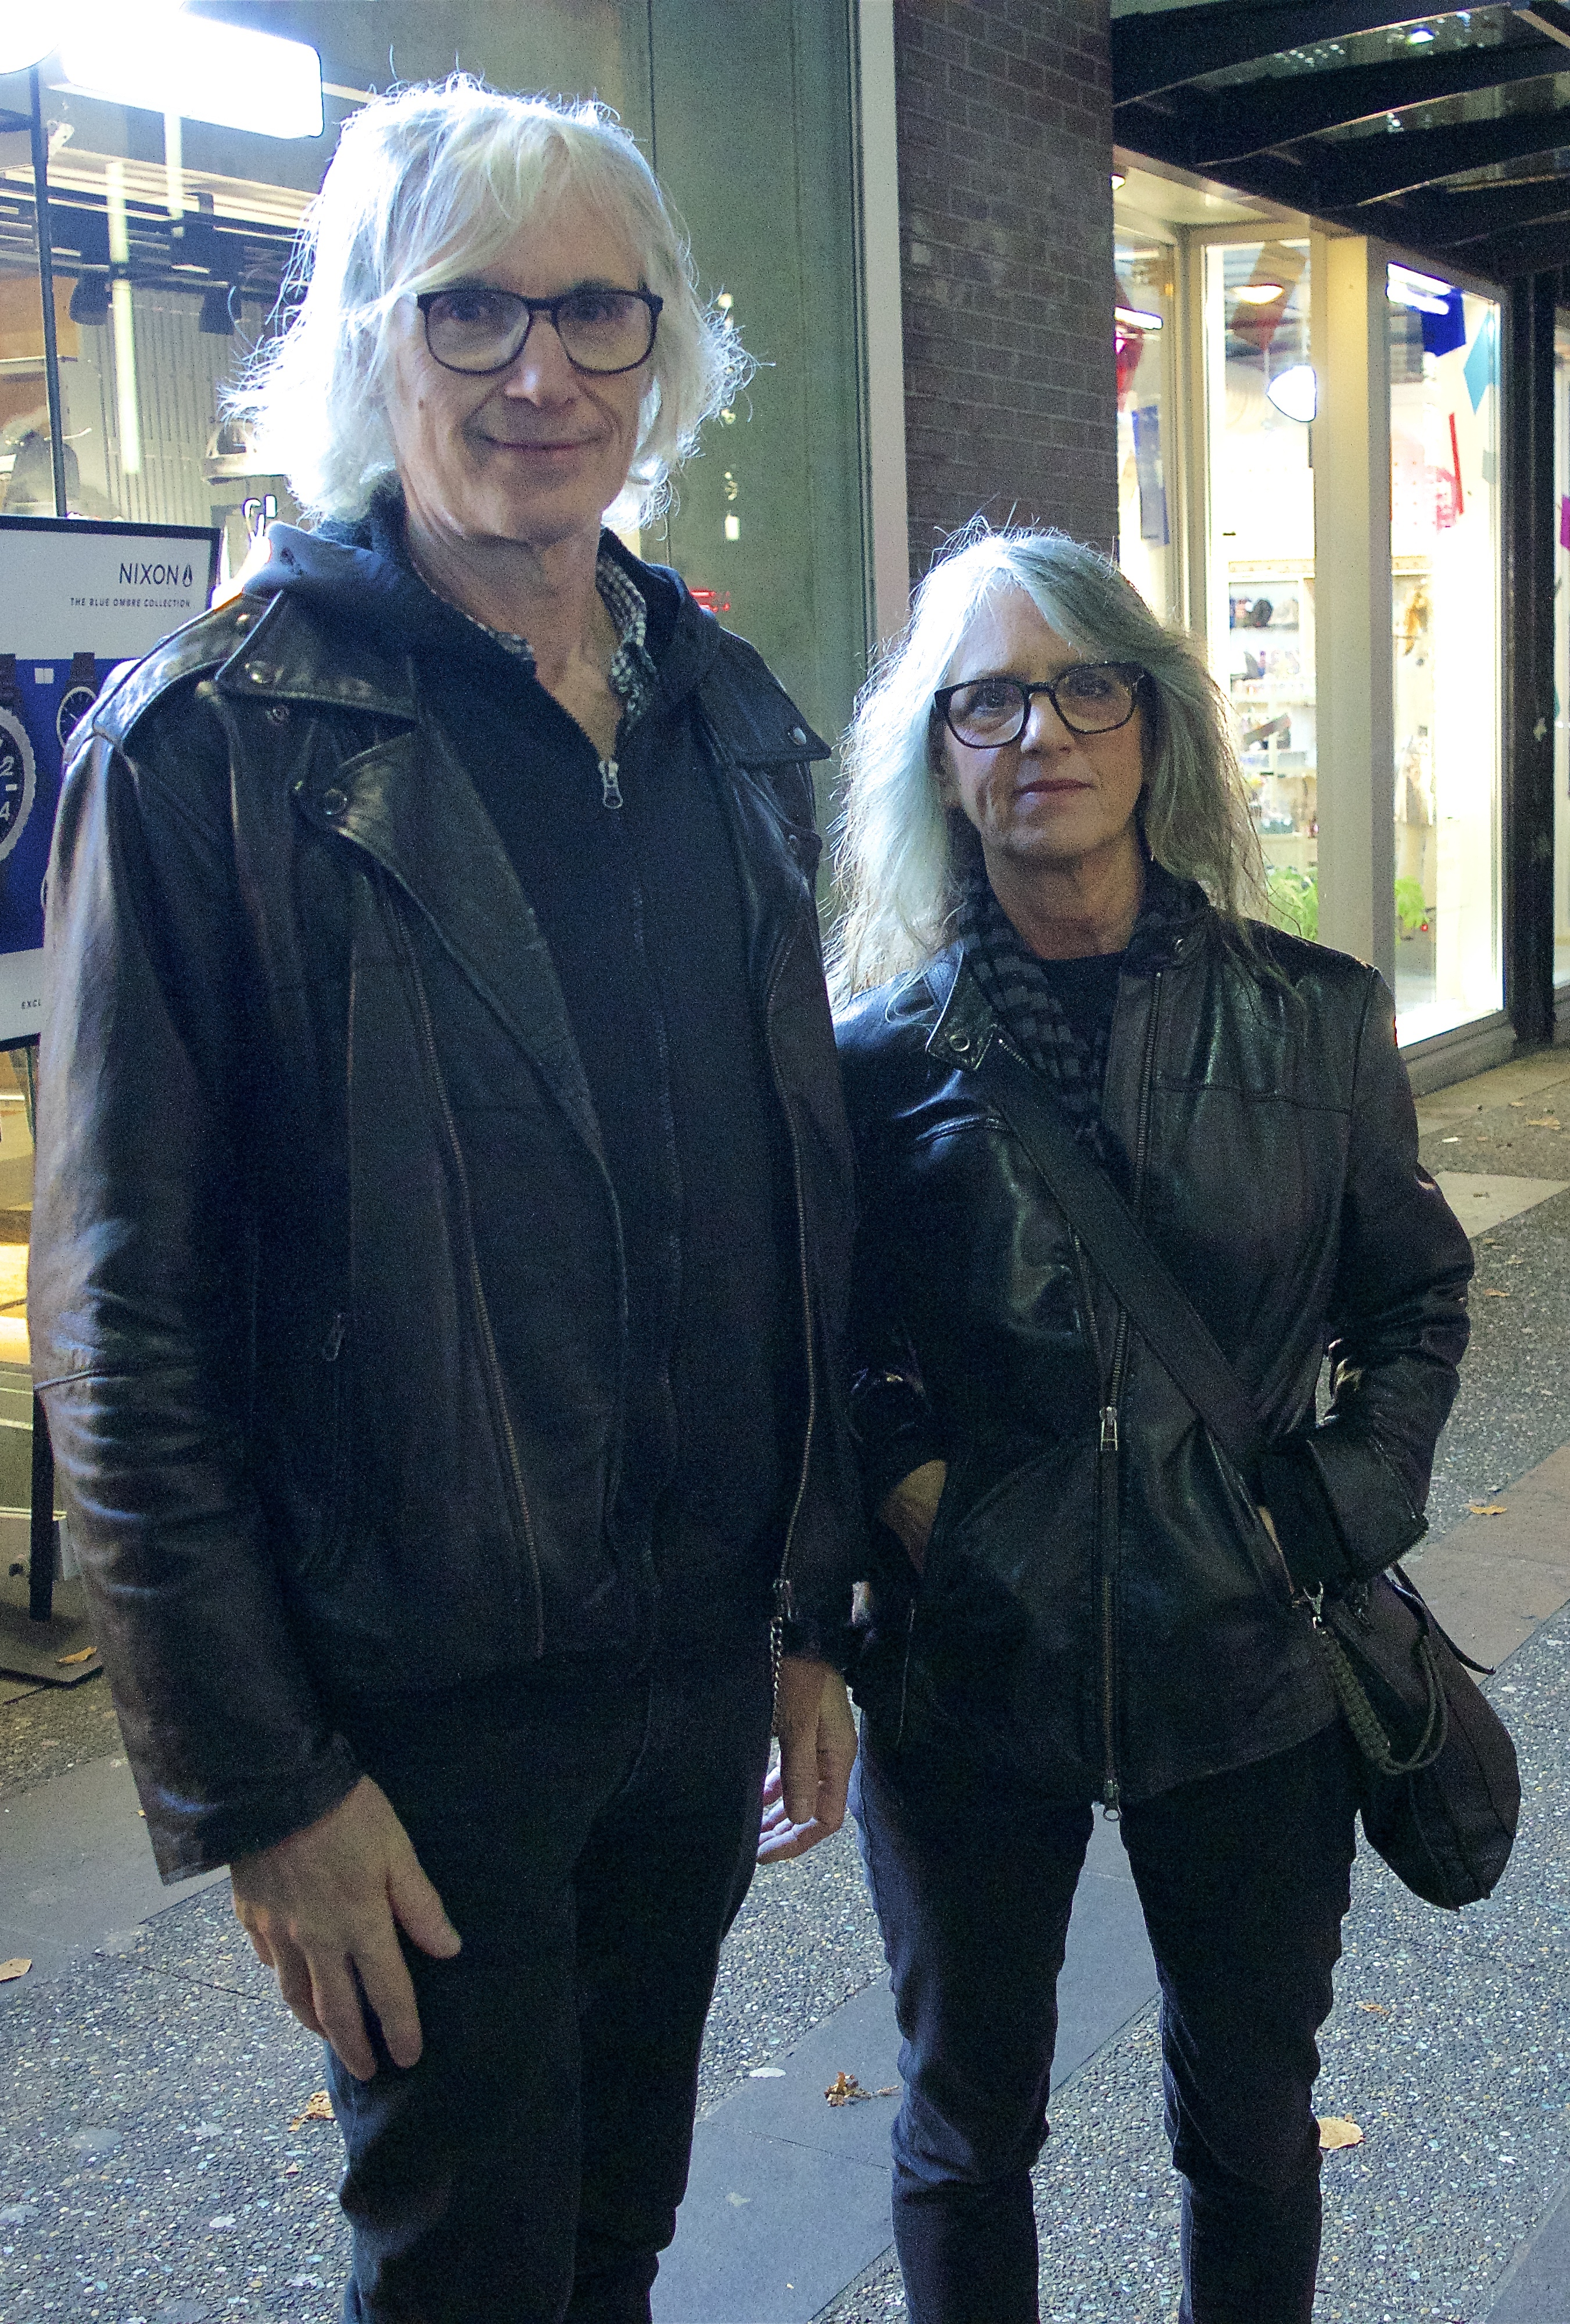 Cecil English and Donna Mabbett reminisce about '80s Vancouver punk.